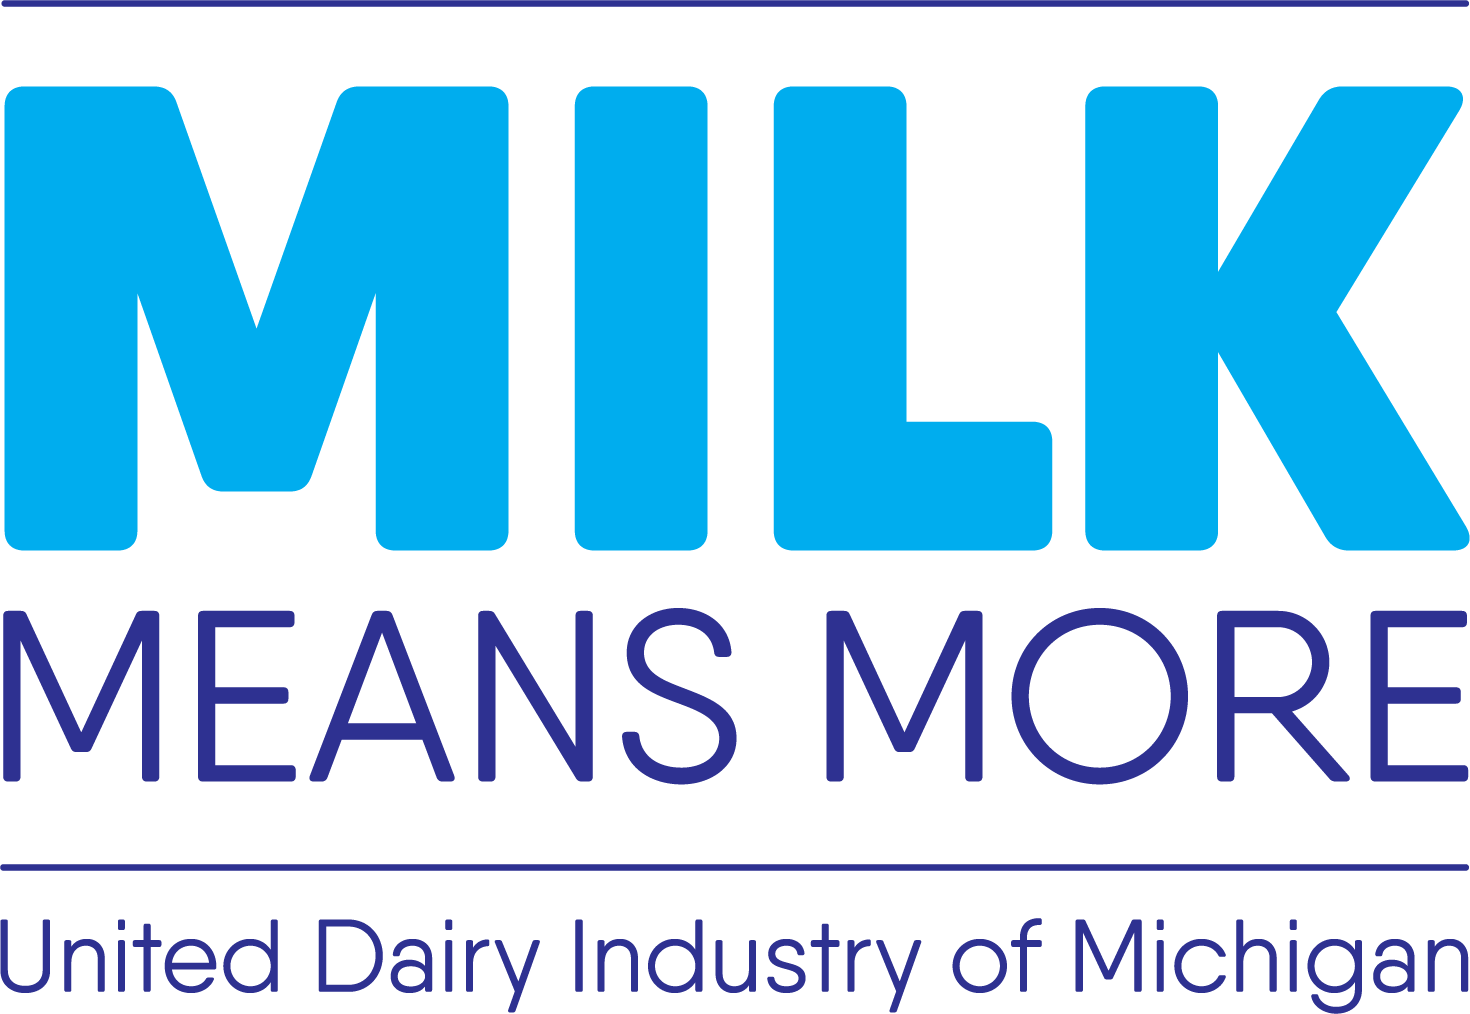 Company logo of United Dairy Industry of Michigan